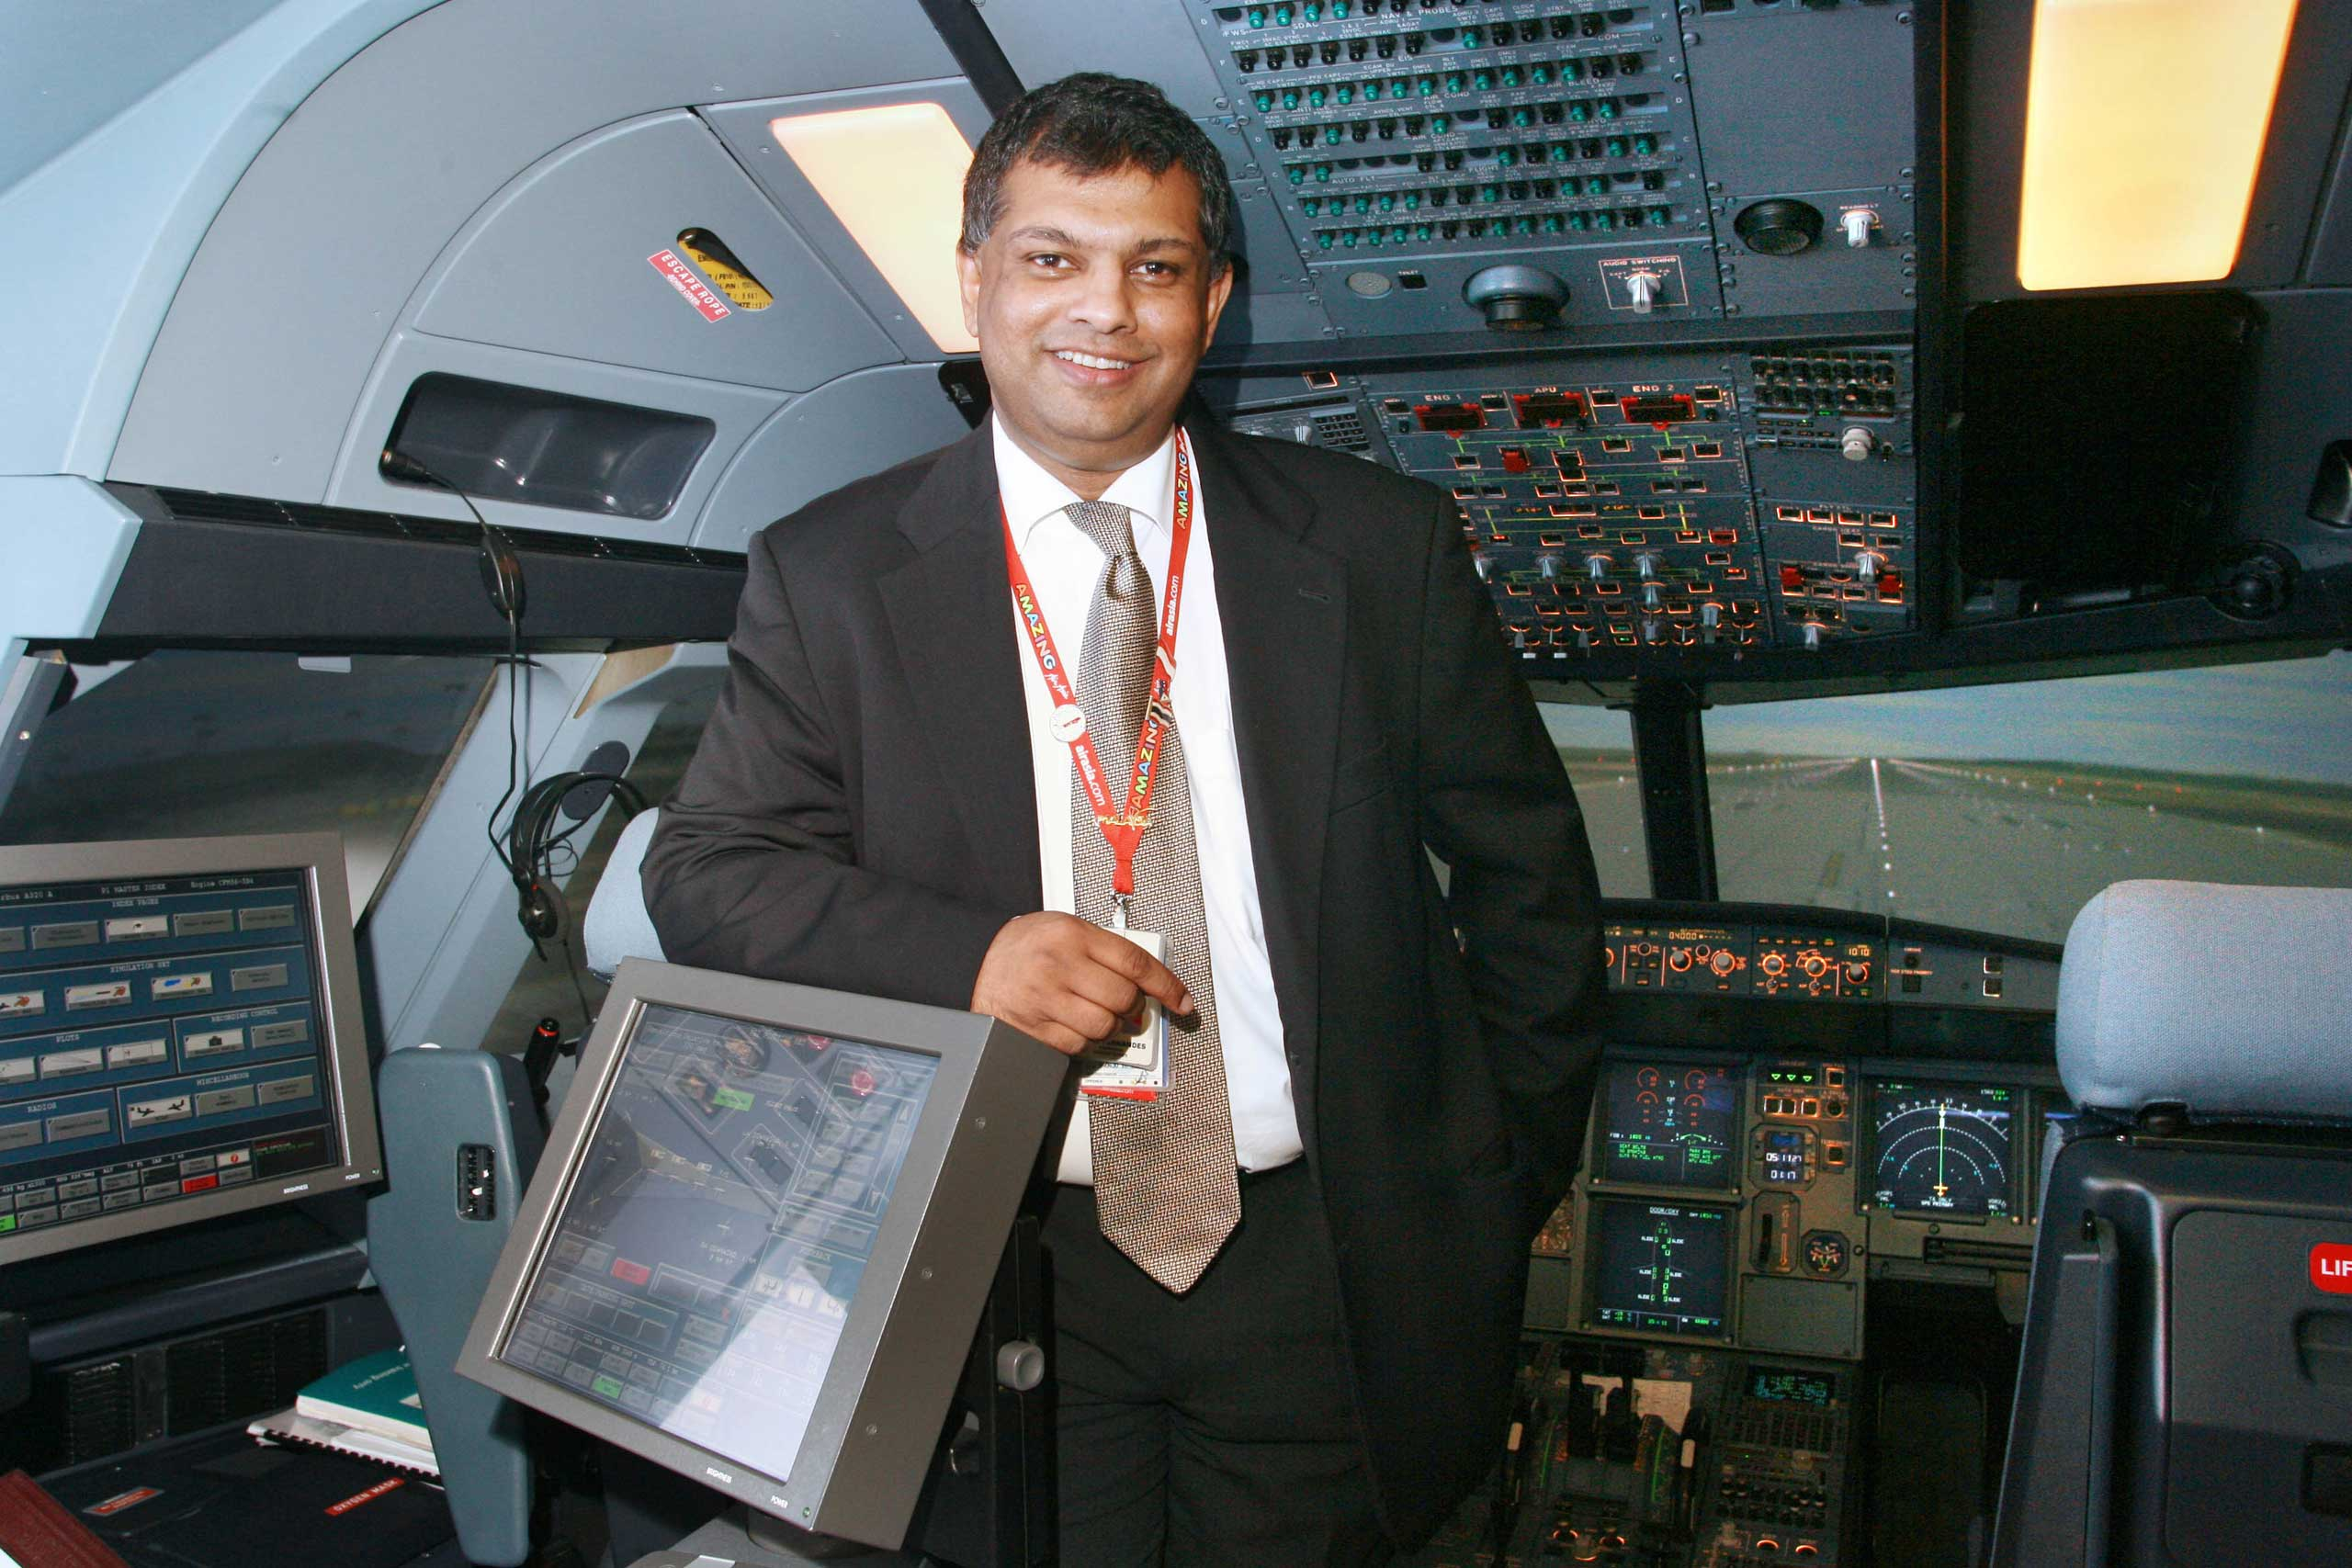 Fernandes poses for a photo in a Boeing Simulator after the Air Asia annual general meeting held at Kuala Lumpur, Dec. 28, 2006.